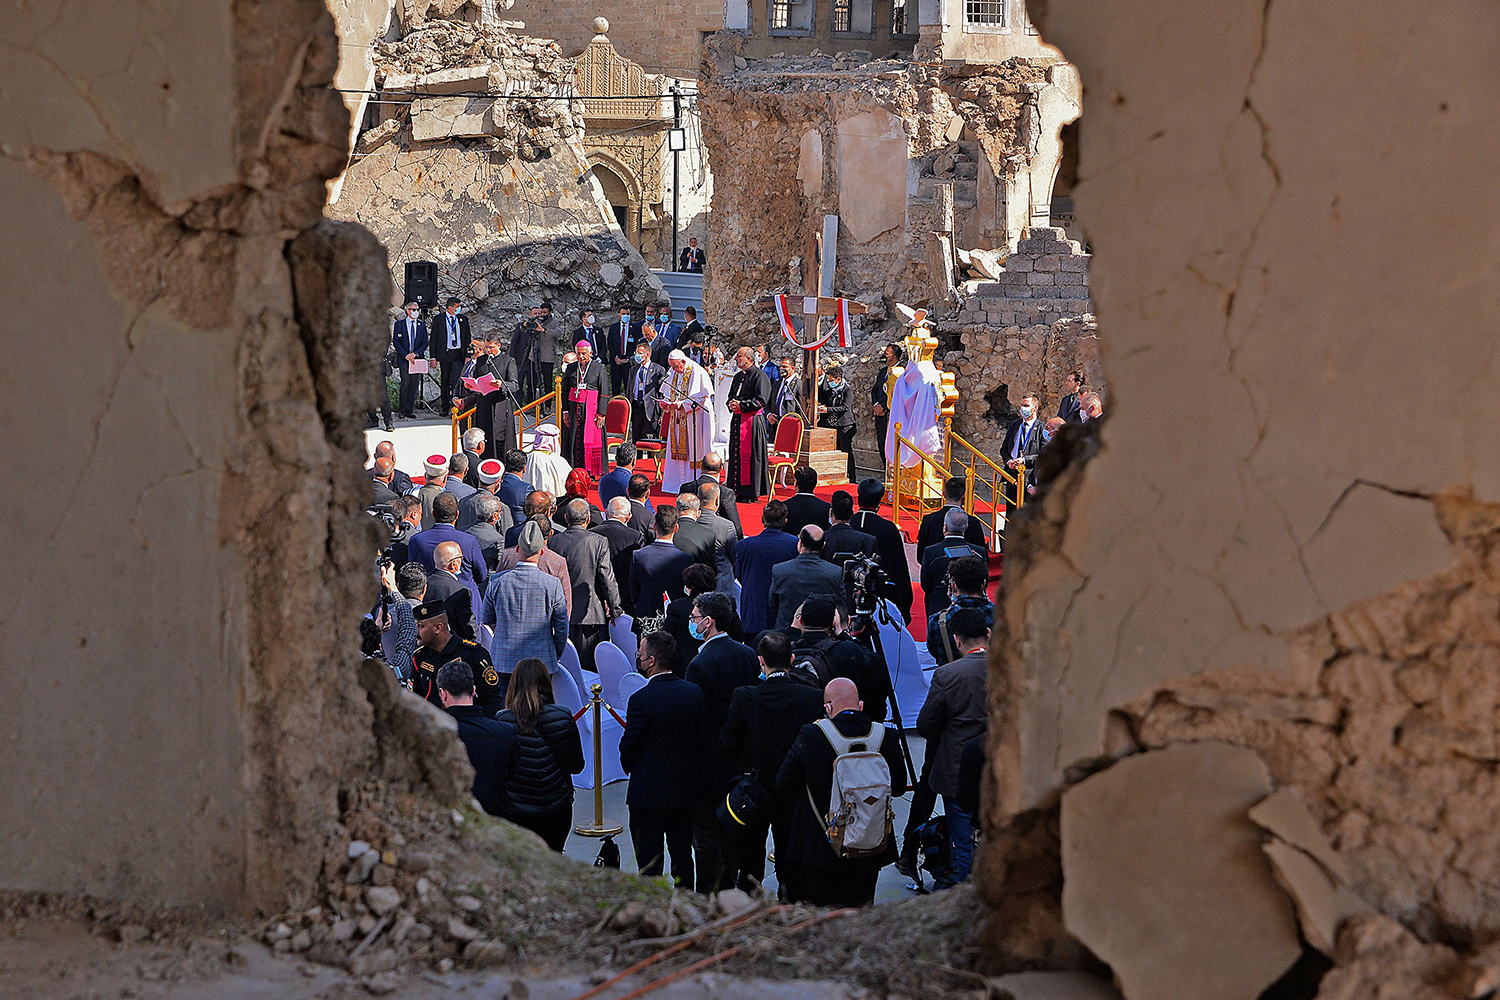 Pope Francis addresses Iraqis near the ruins of the Syriac Catholic Church of the Immaculate Conception in northern Mosul on March 7. Pope Francis was the first pope to visit Iraq, where he met with Christian communities that endured the brutality of the Islamic State. ZAID AL-OBEIDI/AFP via Getty Images